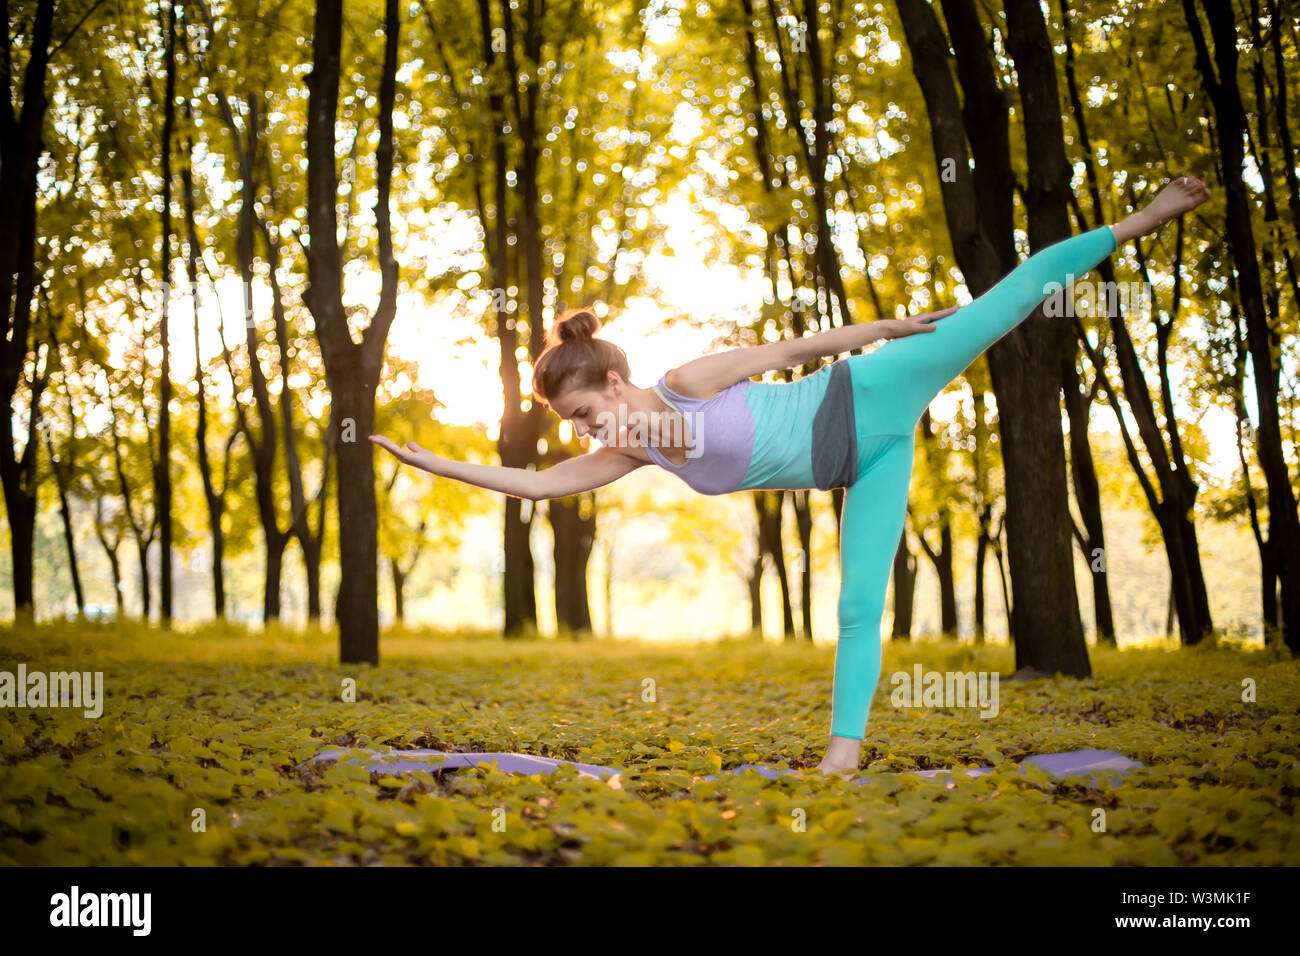 Thin brunette girl plays sports and performs yoga poses in autumn park on a sunset background. Woman doing exercises on the yoga mat. Autumn forest. S - Stock Image